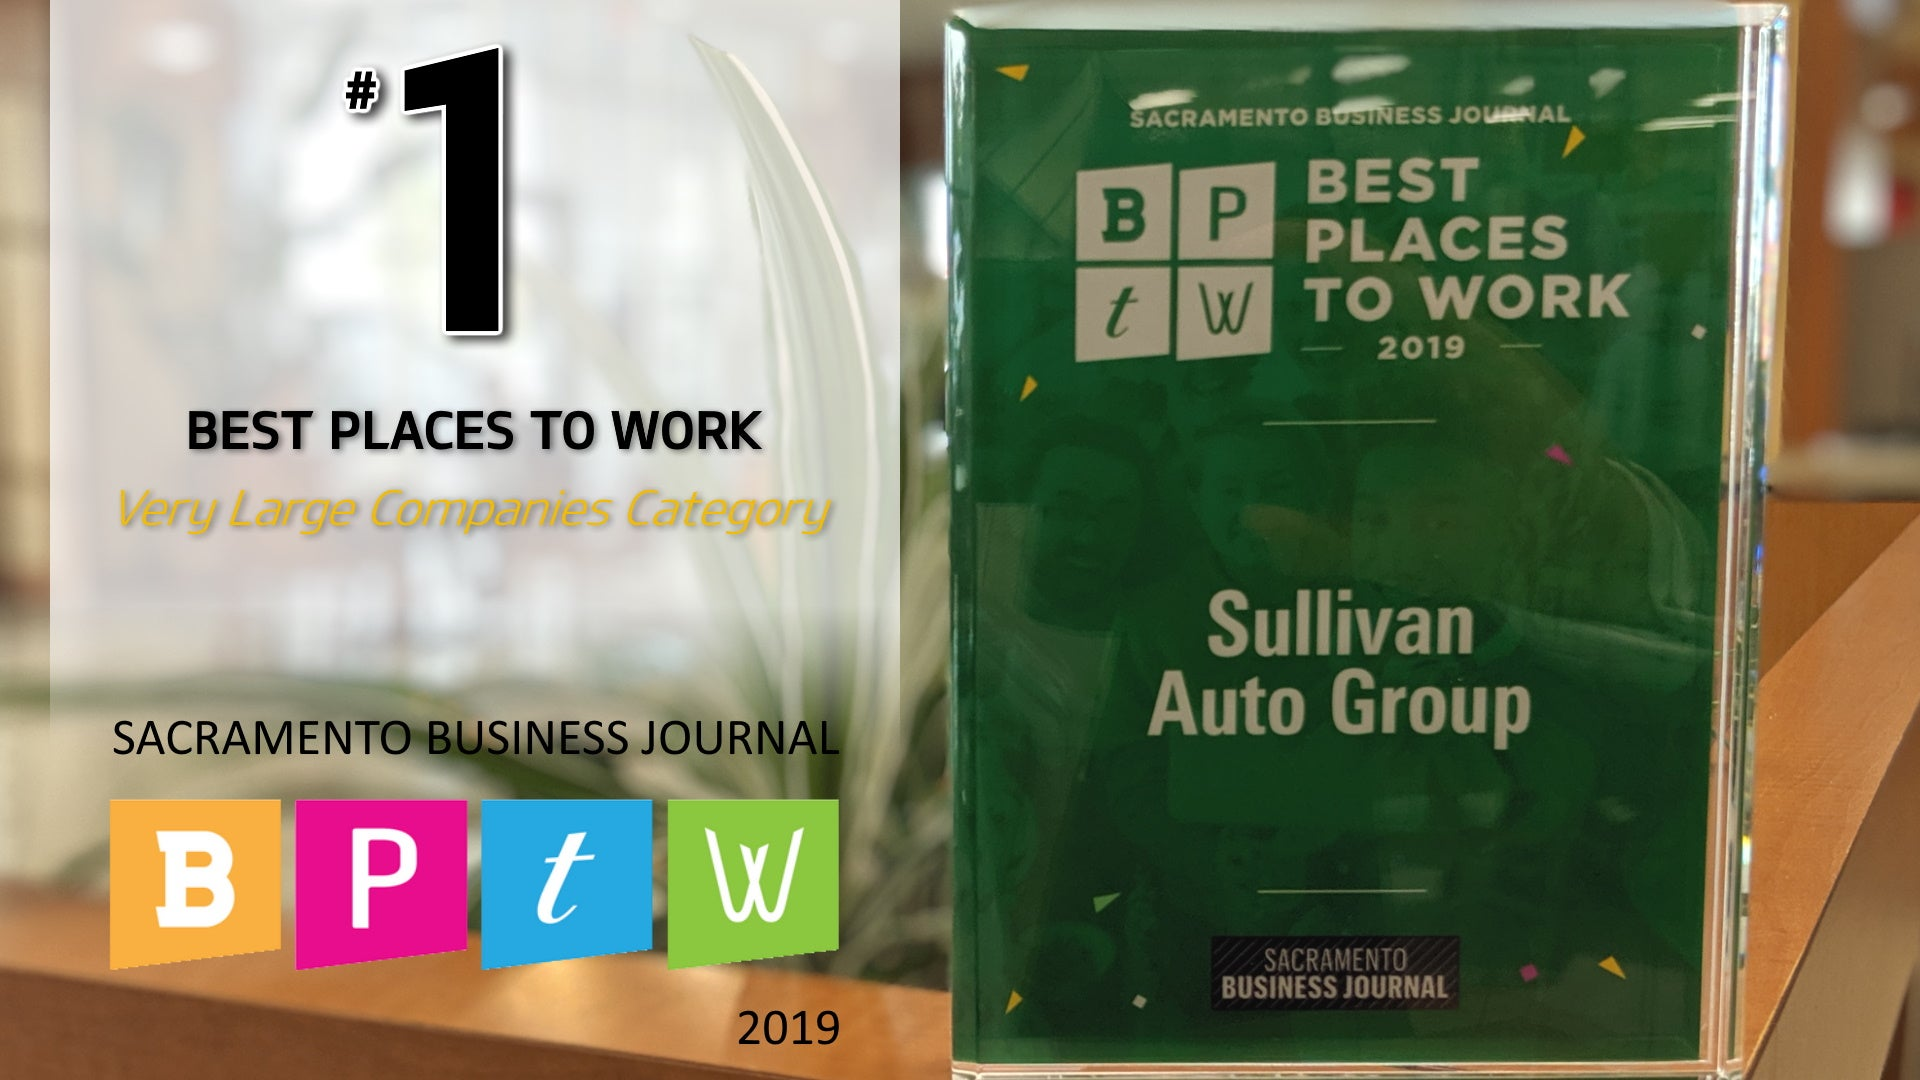 Best Places To Work Award 2019